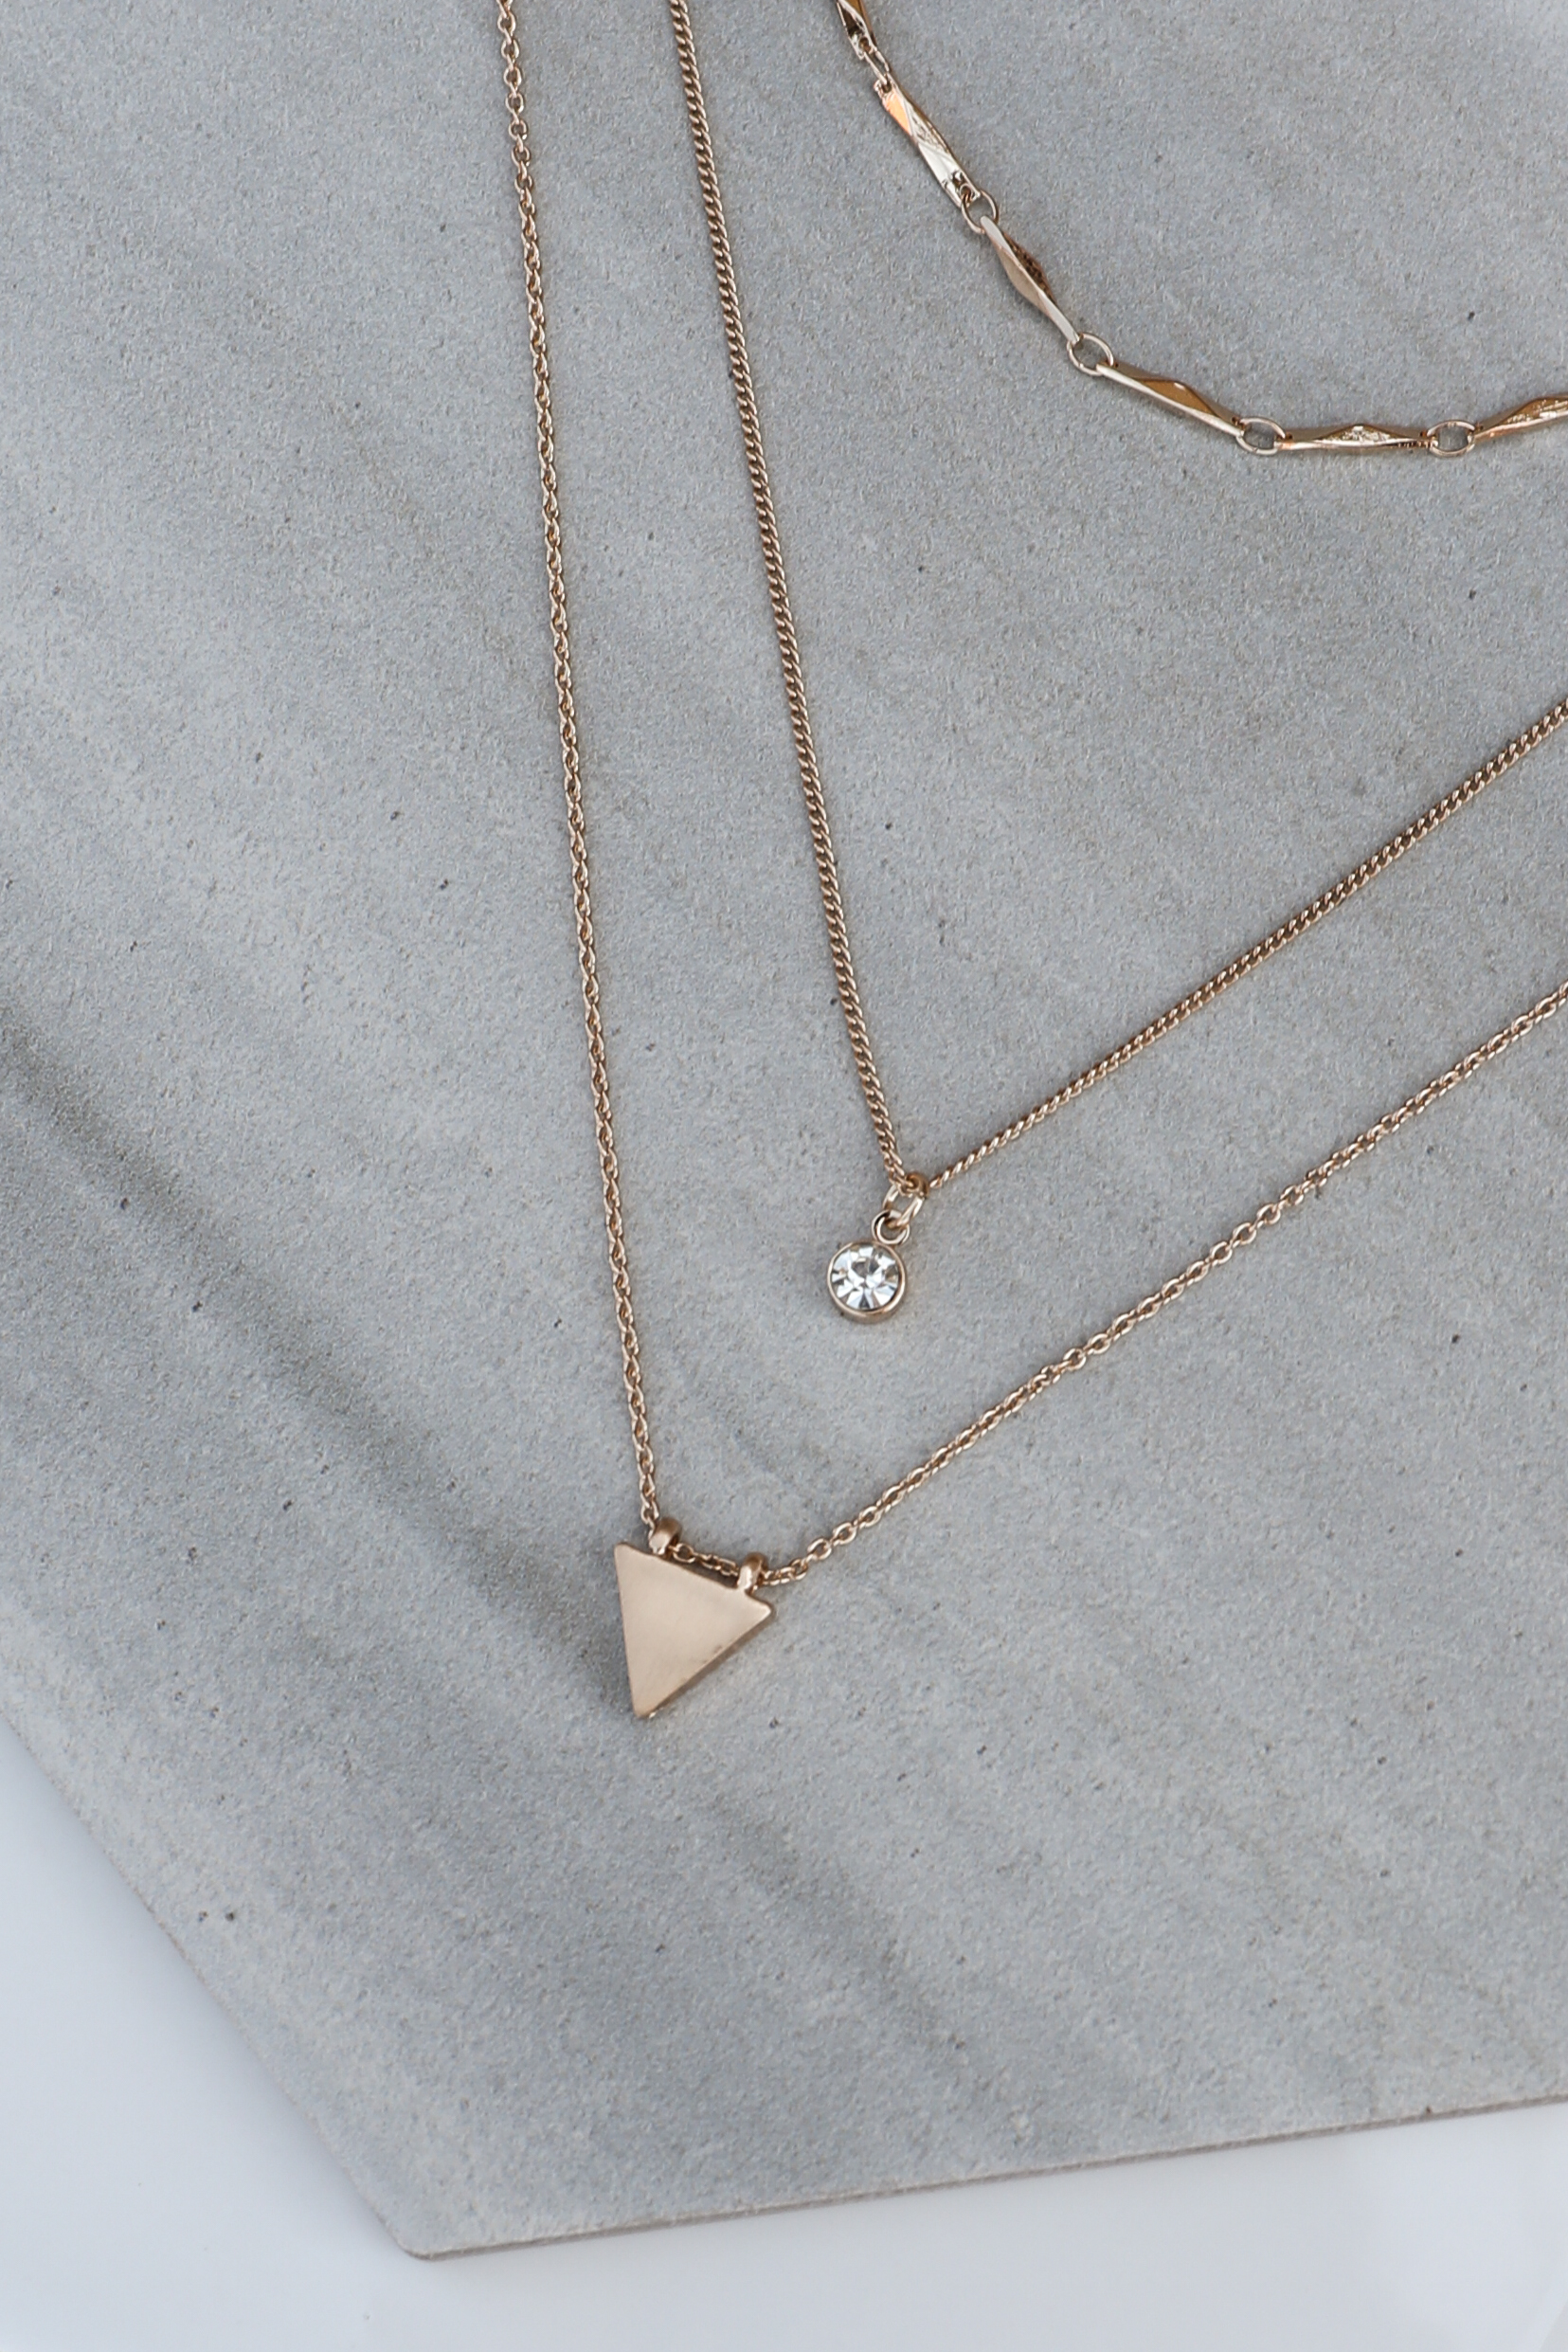 Gold Layered Necklace Set with Triangle and Diamond Pendants